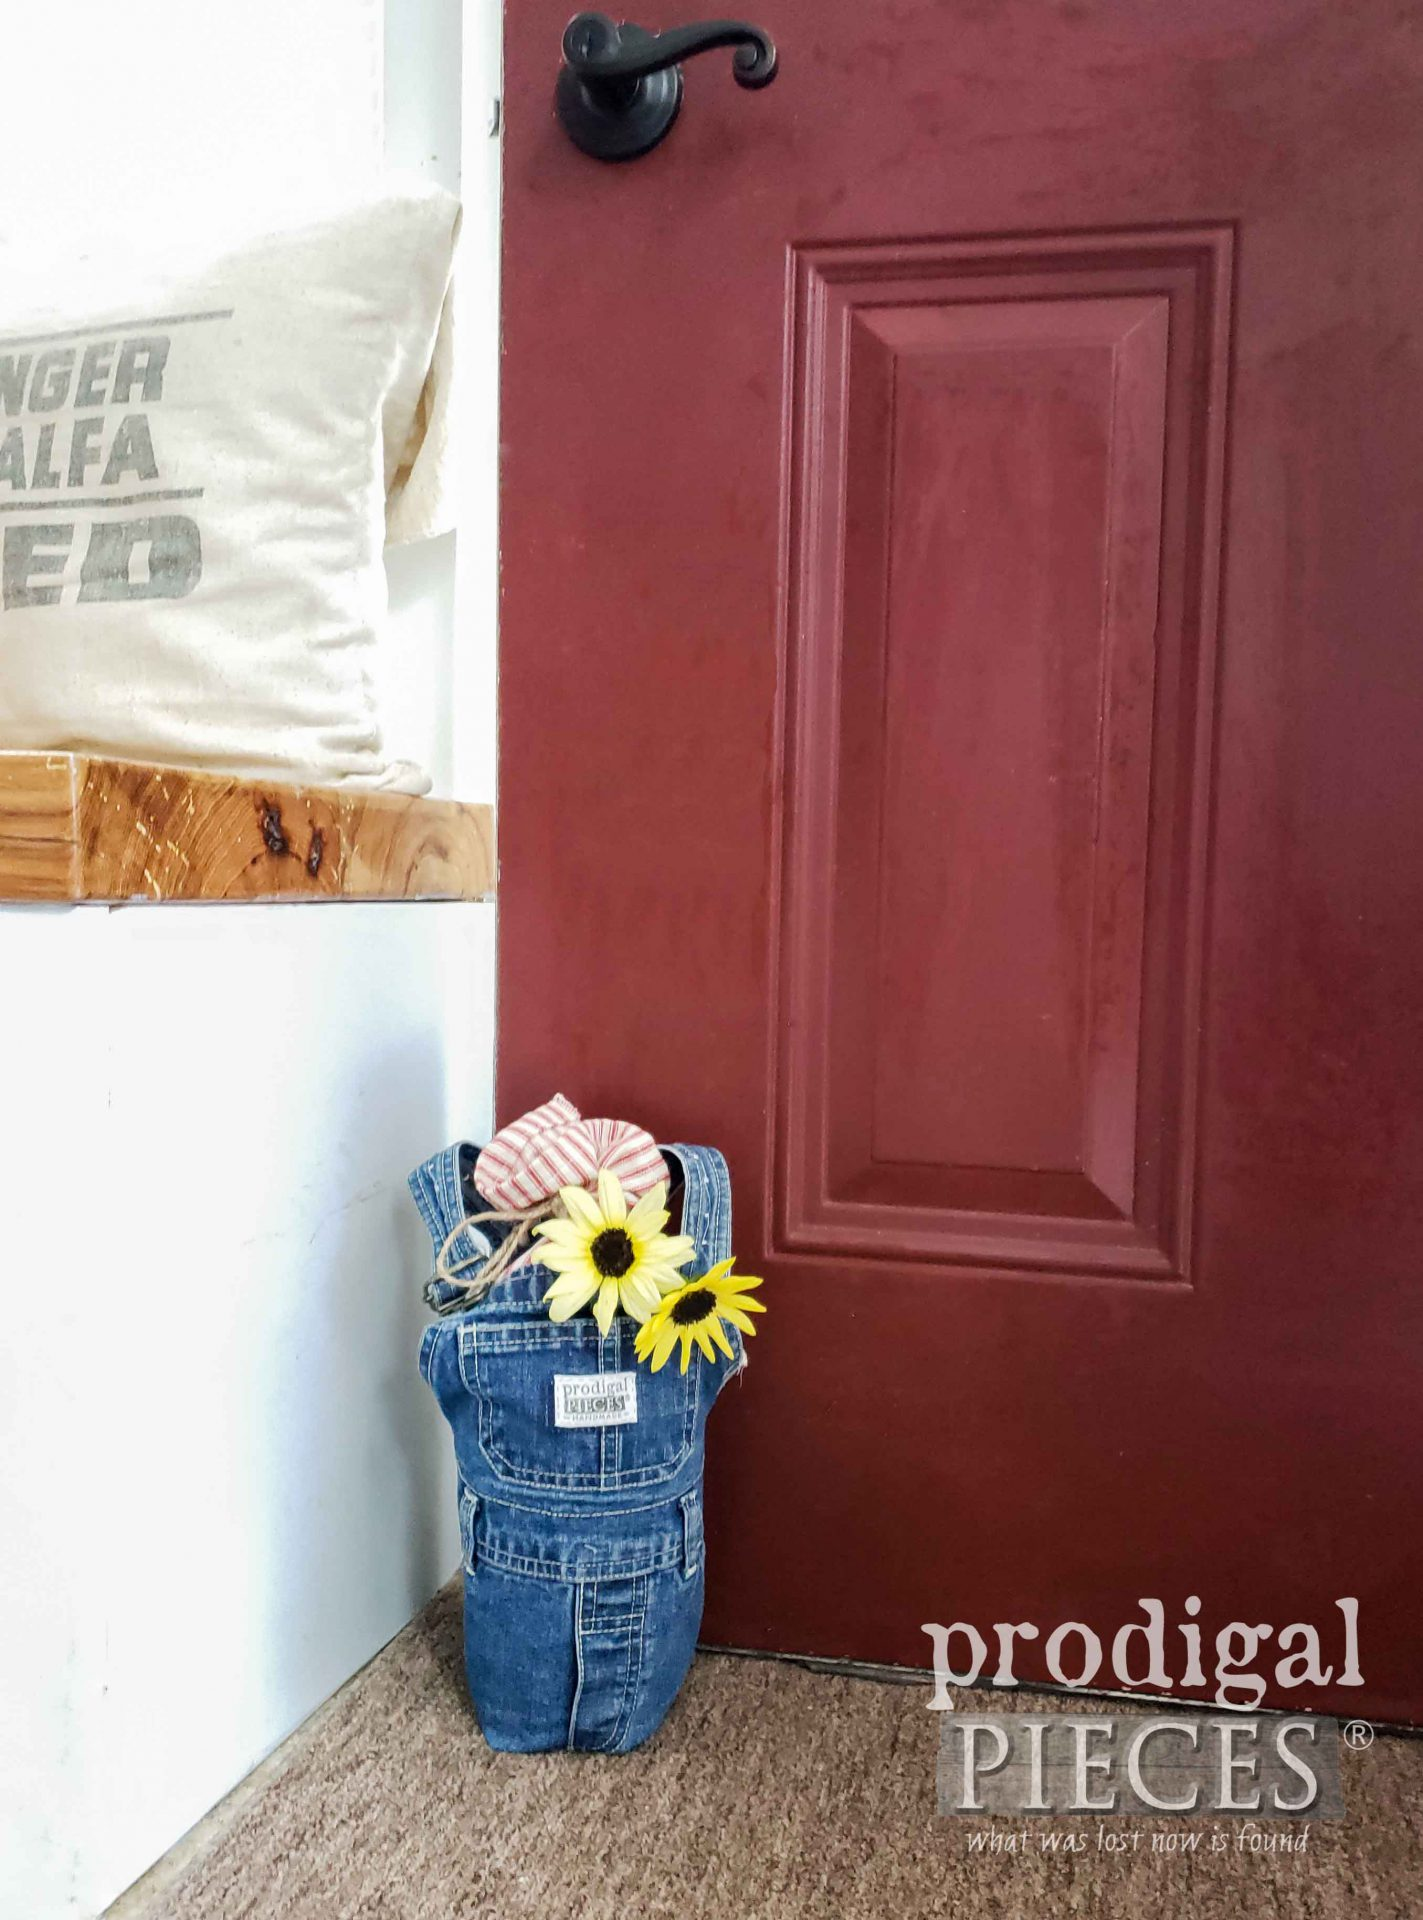 Upcycled Baby Bib Overalls into DIY Doorstop for Home Decor by Larissa of Prodigal Pieces | prodigalpieces.com #prodigalpieces #diy #upcycle #farmhouse #refashion